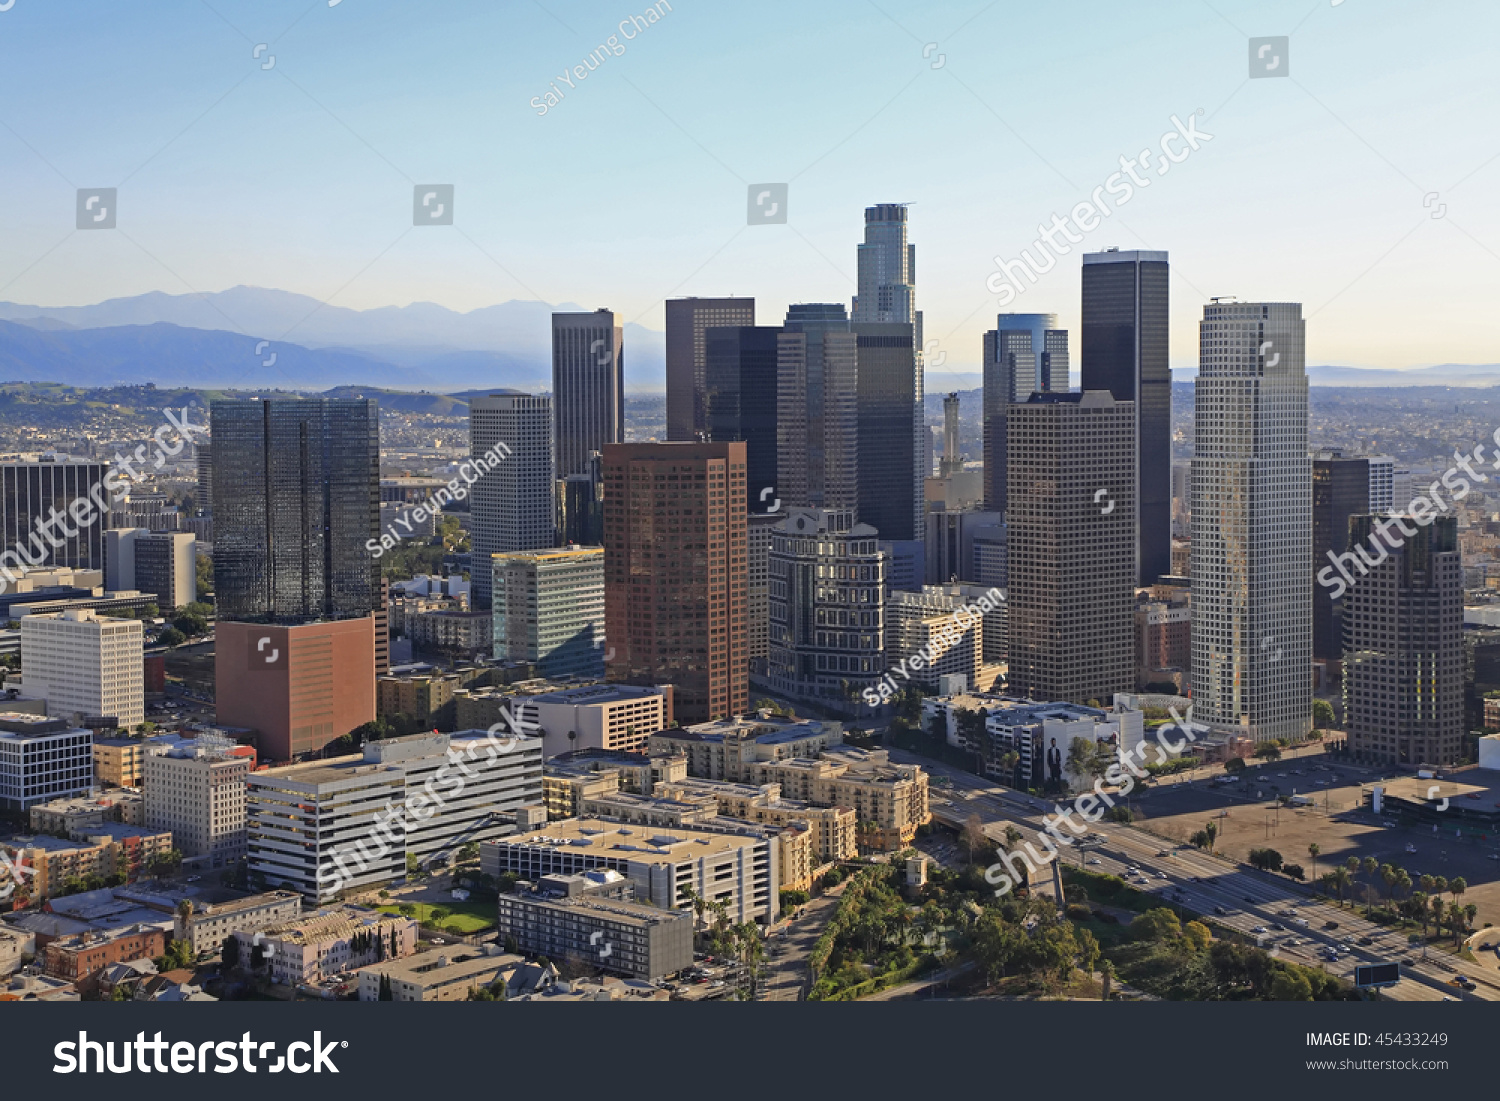 Aerial panoramic stitch downtown los angeles california usa stock photo 4543 - Panoramic les angles ...